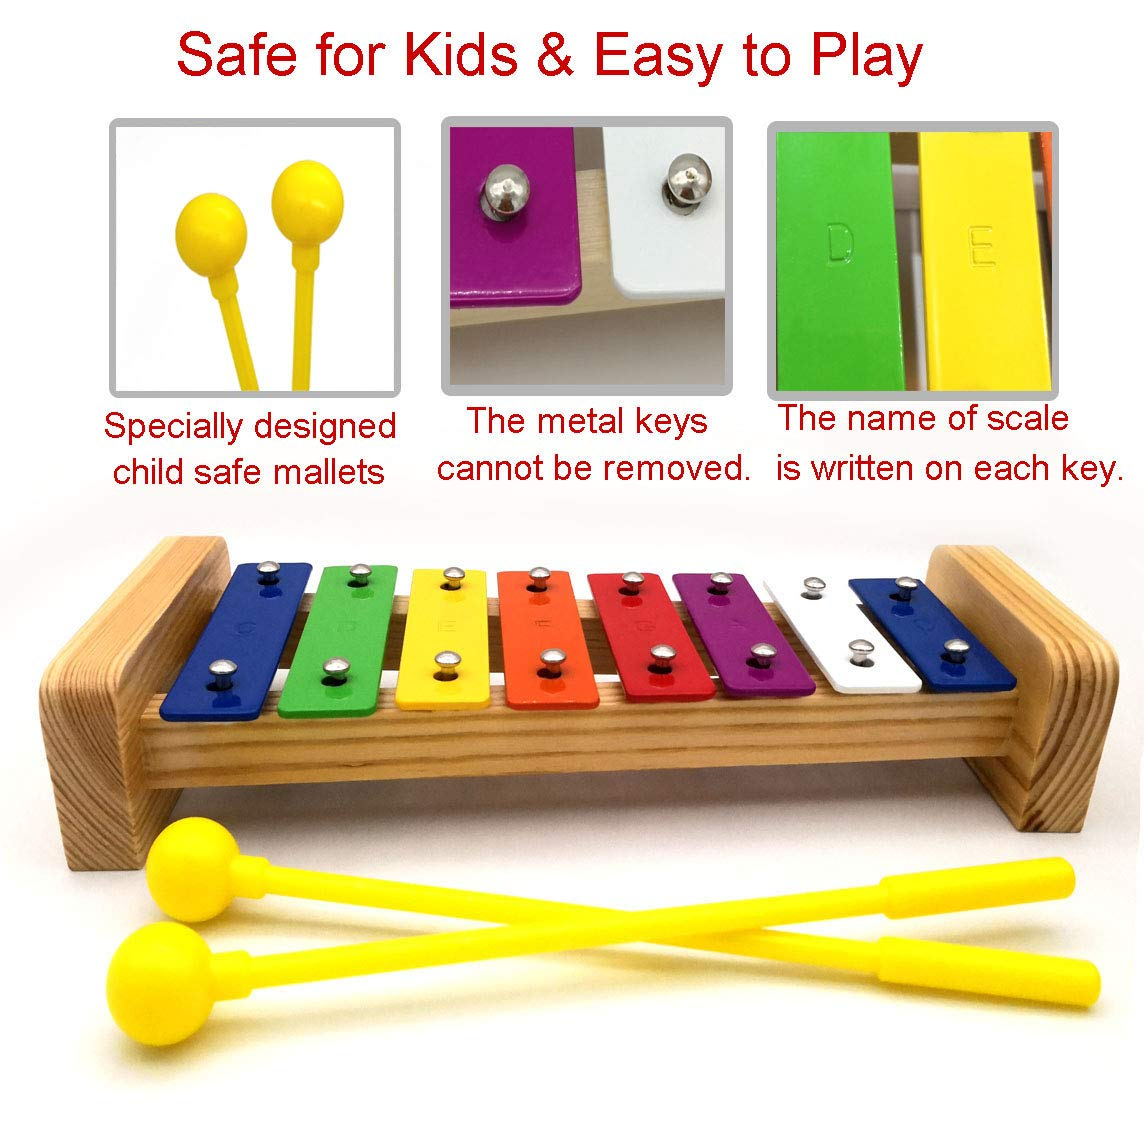 XIYITOY Xylophone for kids,The First Birthday Gift for kids 1-3 Year Old Girl,Boys,Musical Kid Toy for Kids for 4-8 Year Old Boys Gift,Whith Two Child-Safe Mallets for 2-6 Year Old for Making Fun Musi by XIYITOY (Image #4)